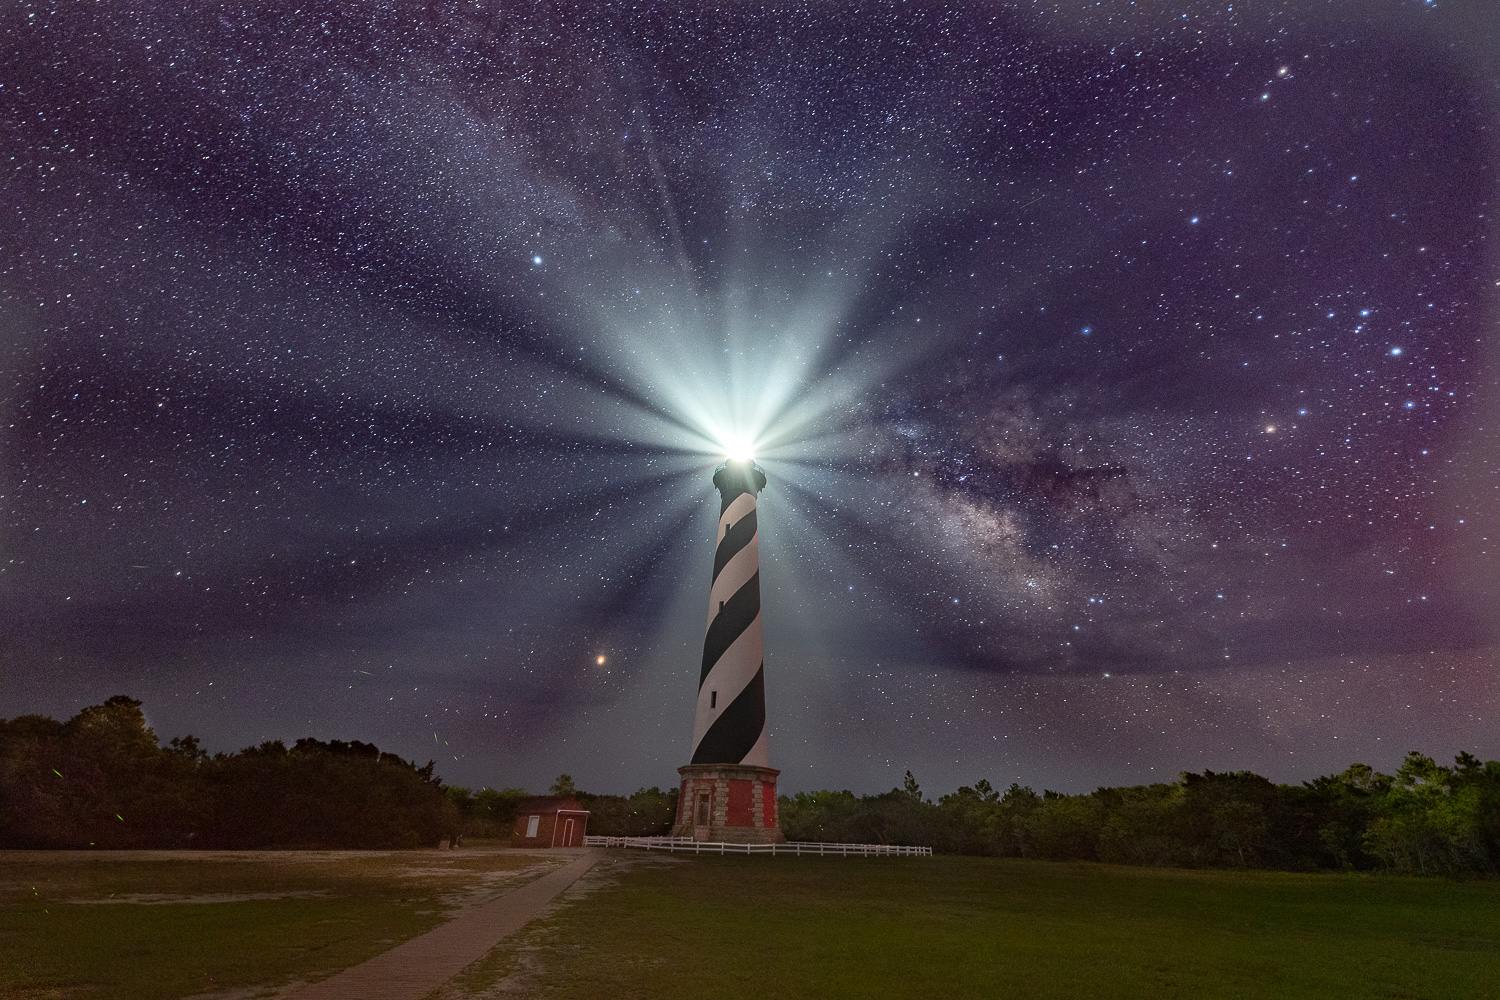 Night Photography on the Outer Banks - MAY 29-31, 2019 | AUG 30-Sep 1, 2019 | MAY 20-22, 2020JUN 19-21, 2020 | JUL 18-20, 2020 | SEP 16-18, 2020